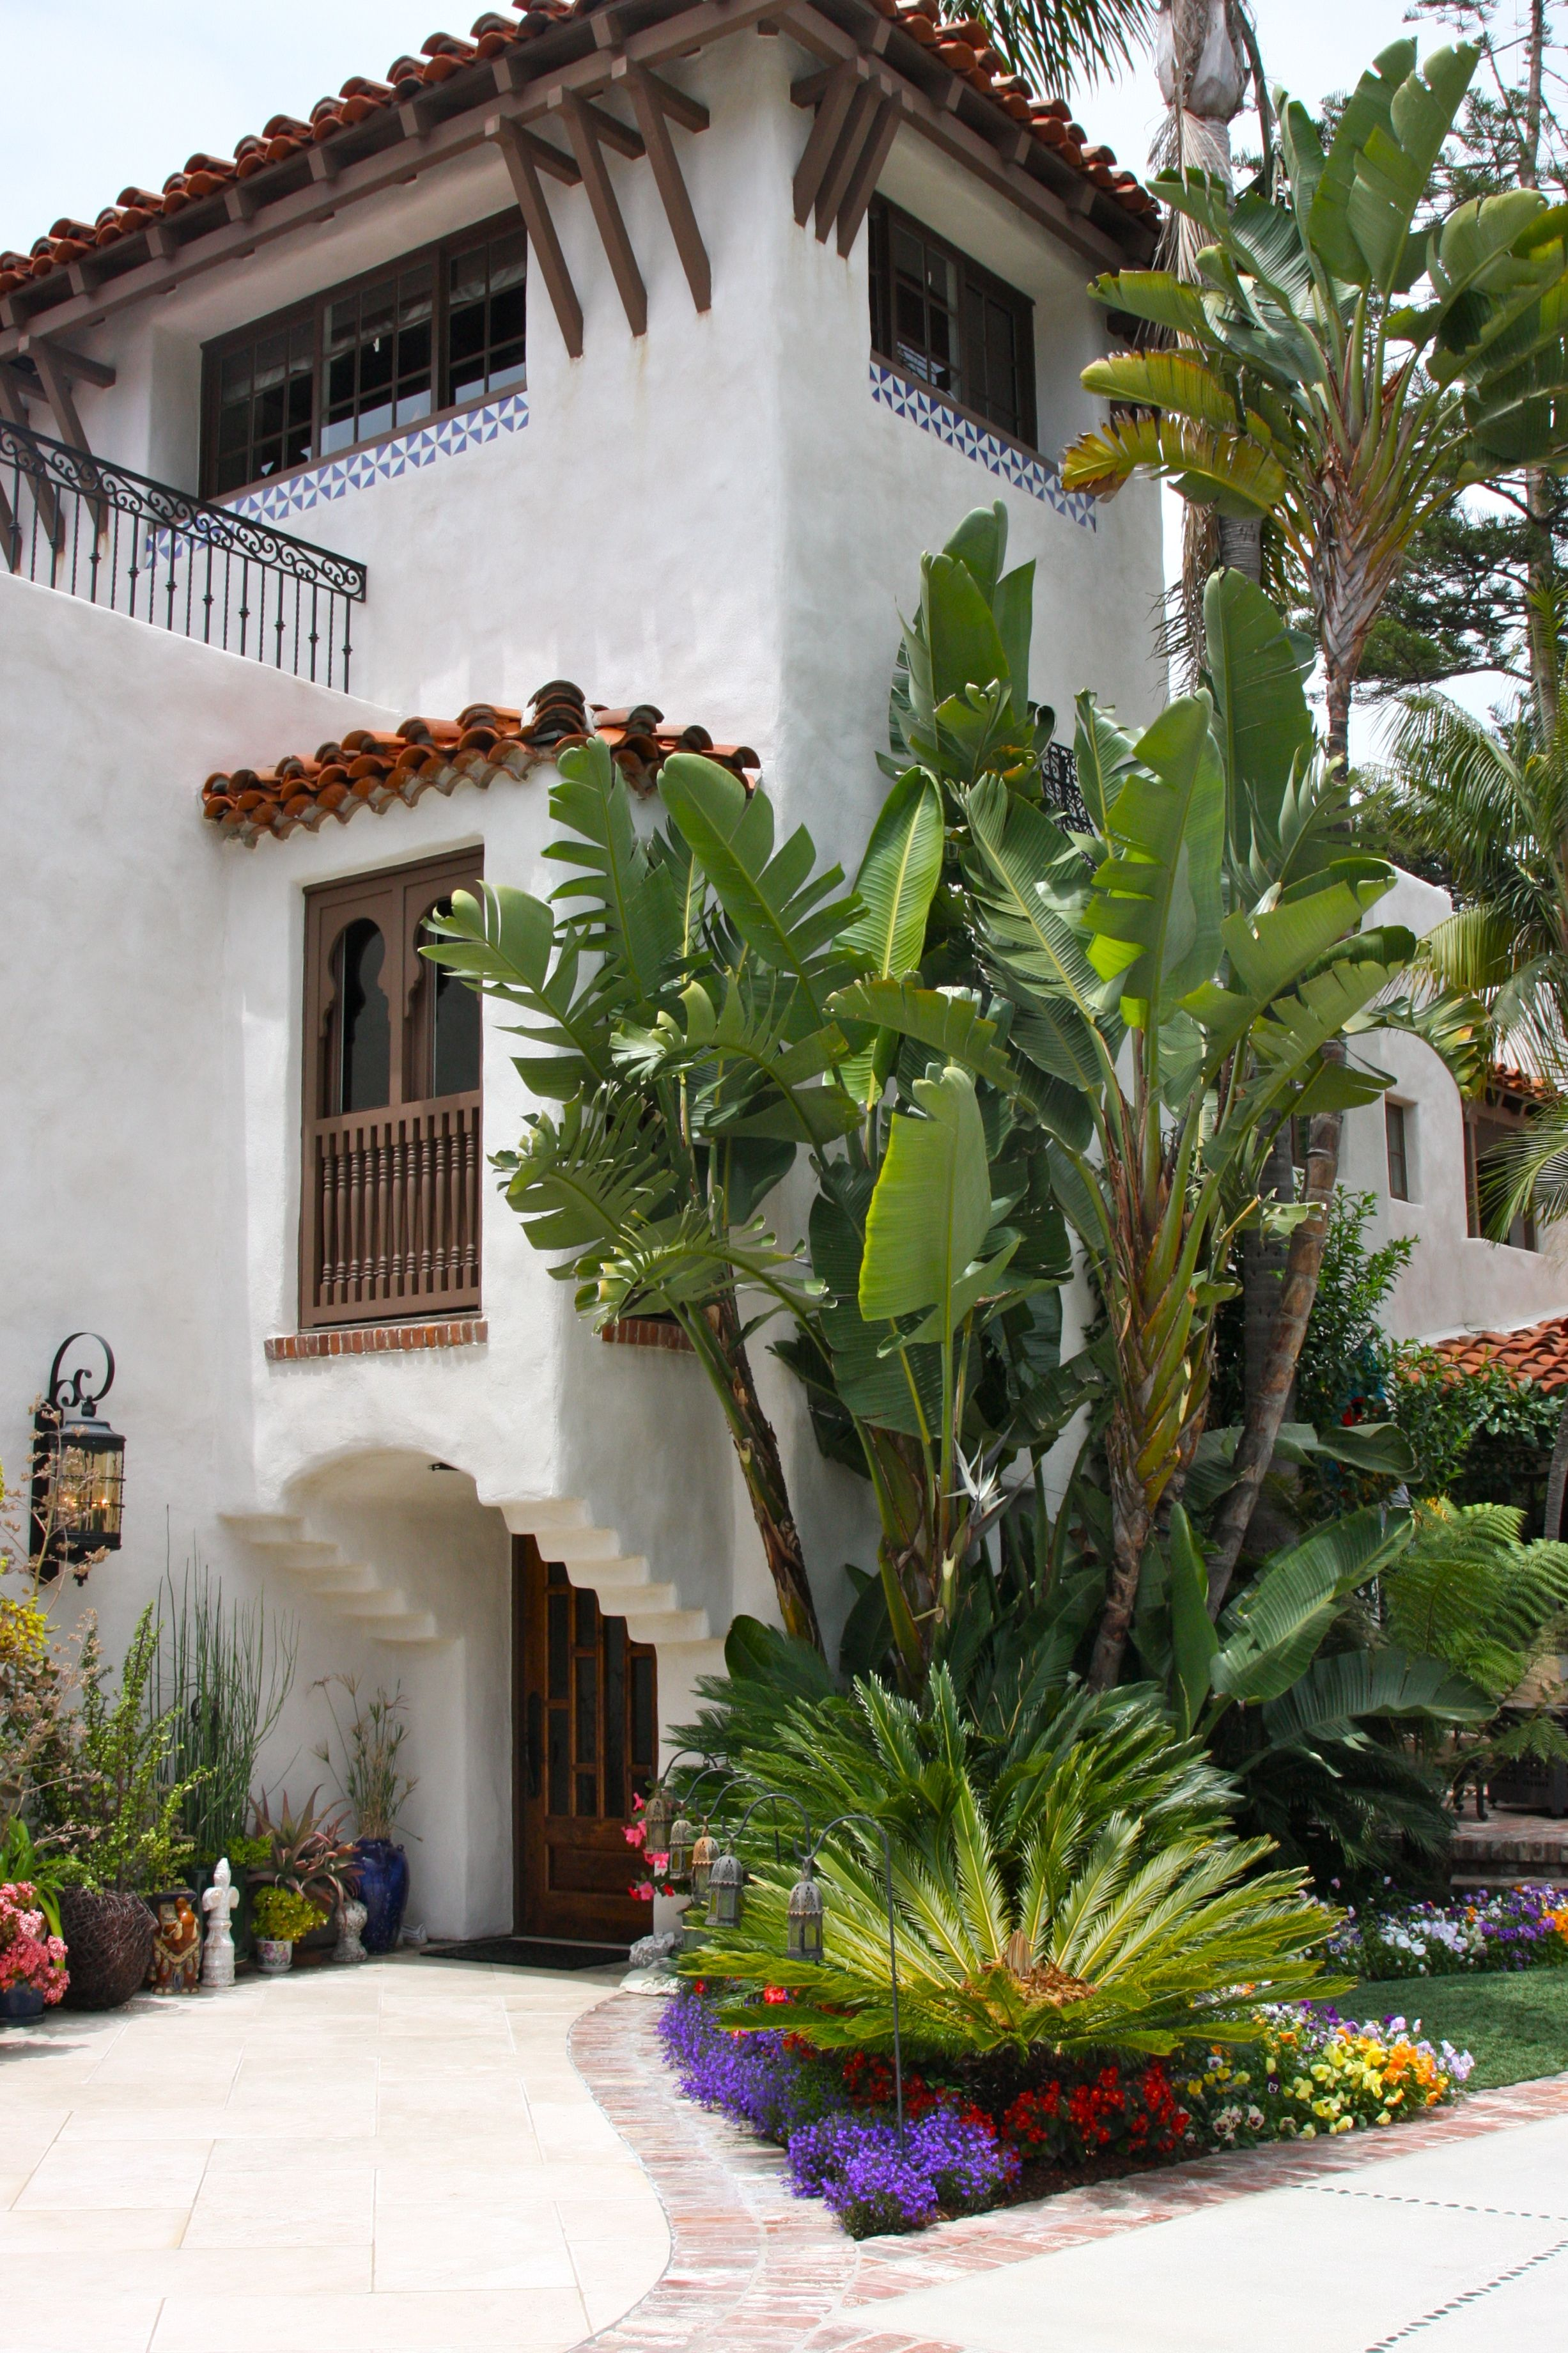 Pin By Persian Kitty Kat On Gardening Spanish Style Homes Spanish Colonial Homes Spanish House